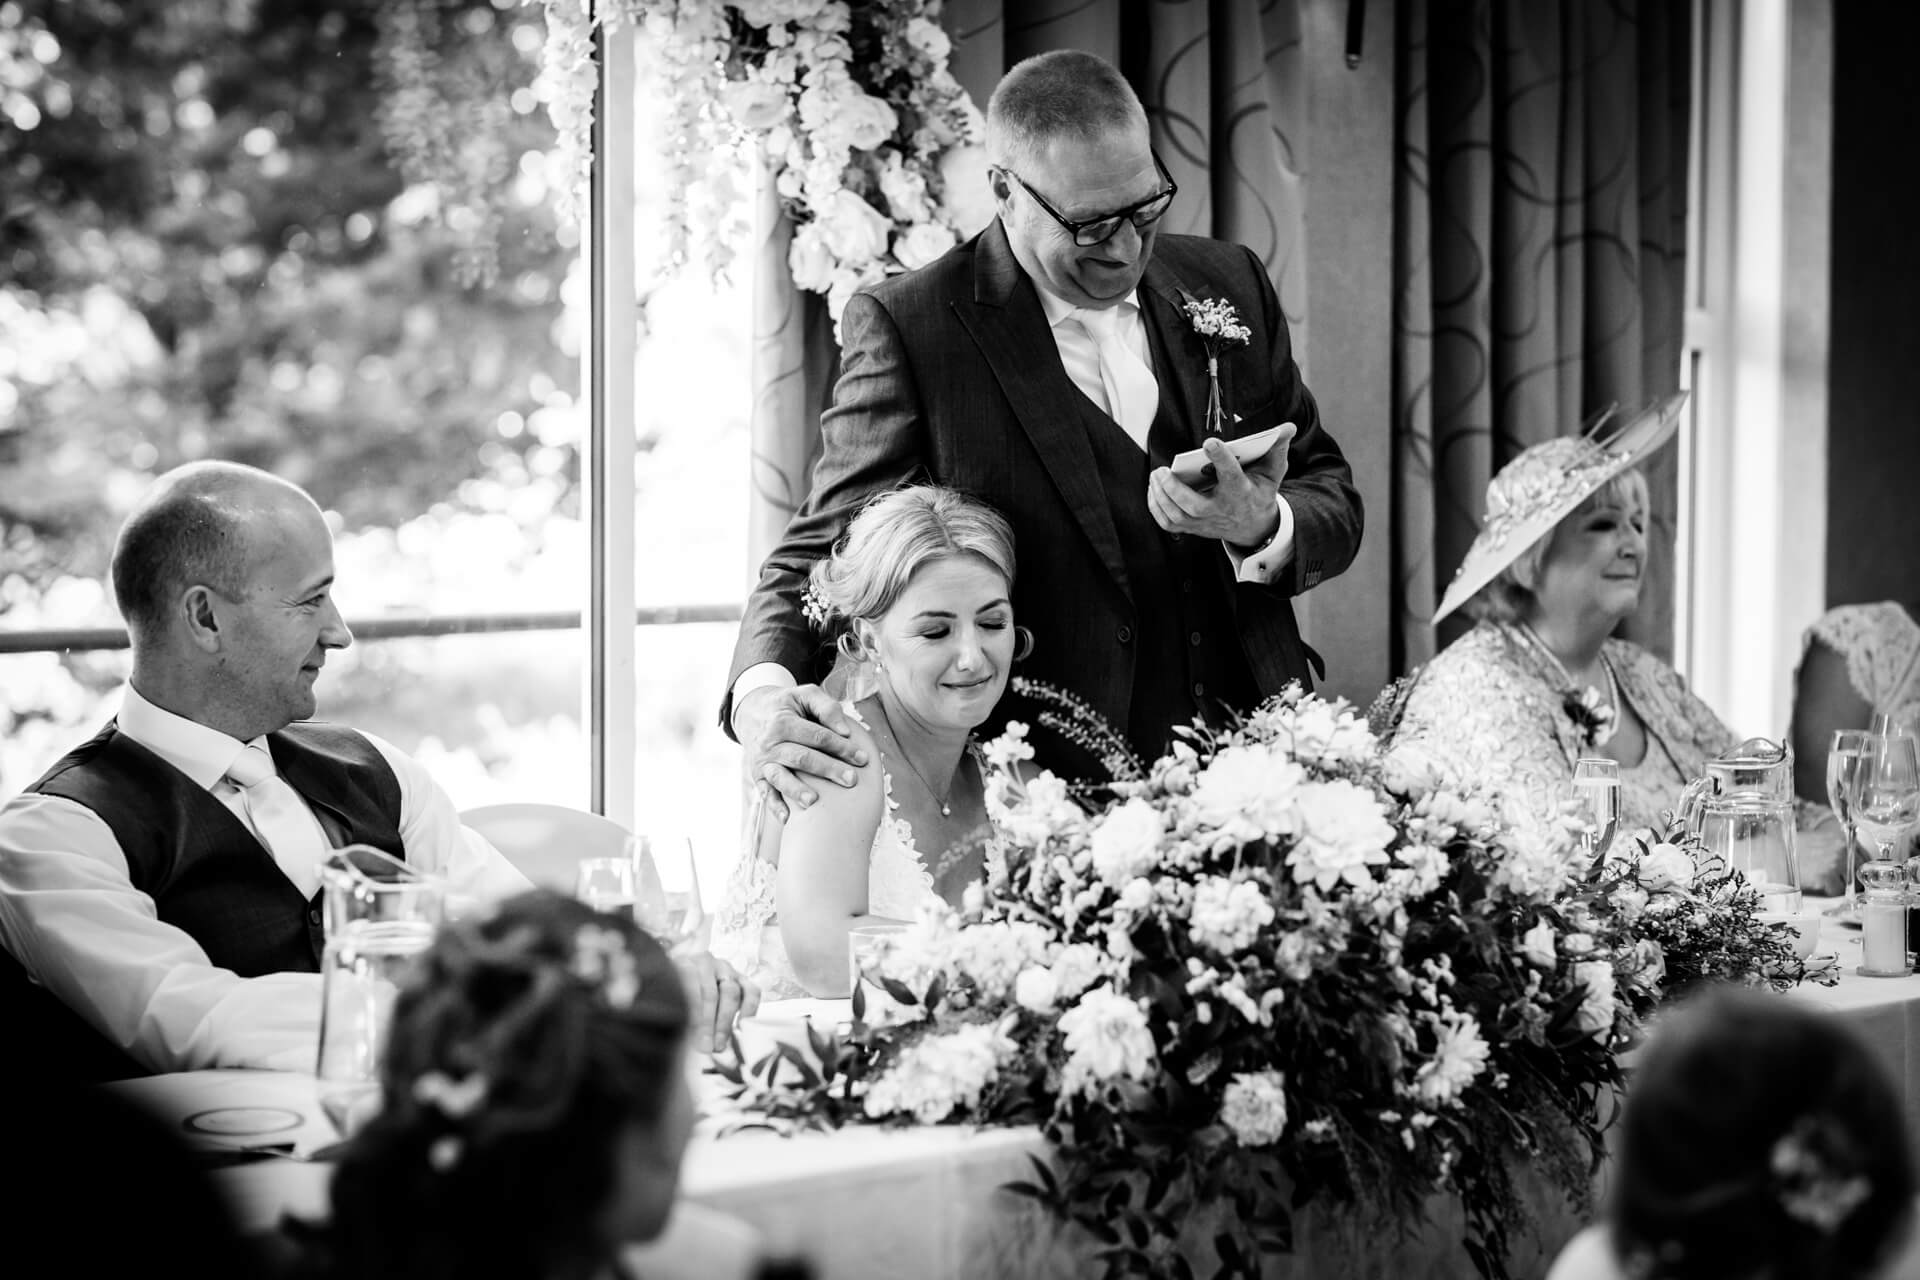 father of the bride putting his arm around the bride whilst making a speech